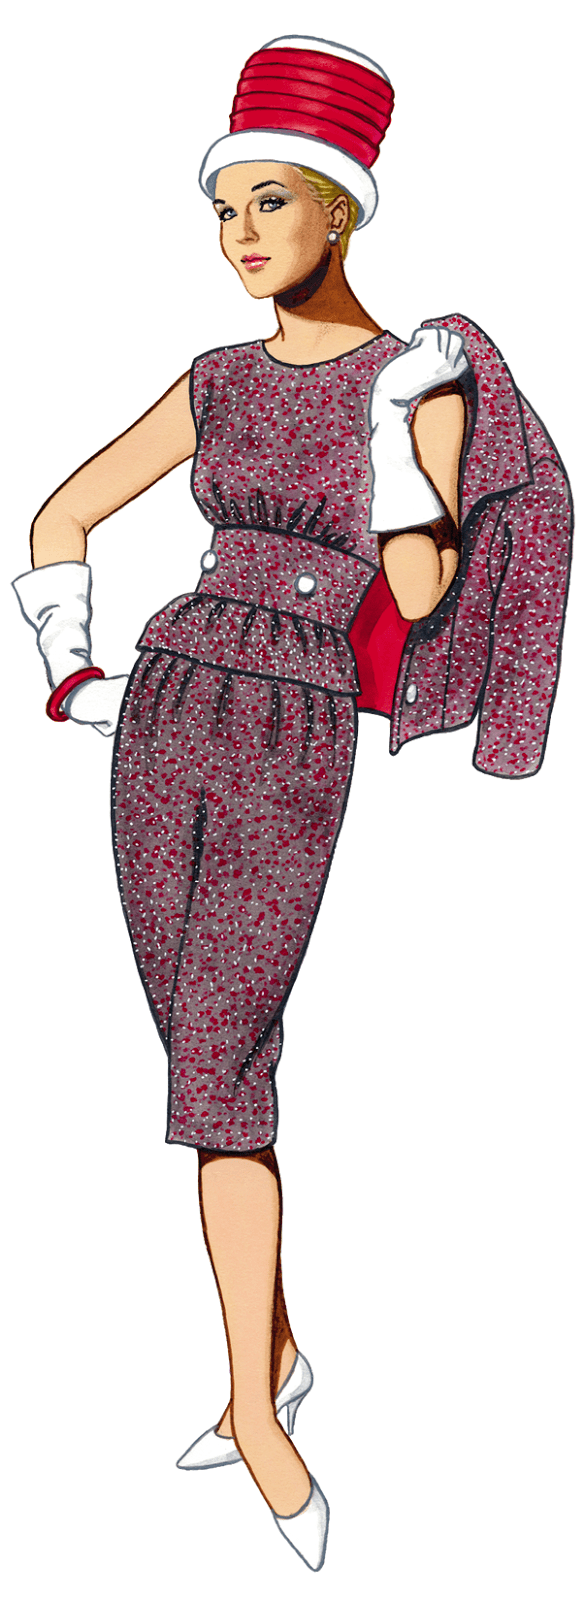 Image of the Day 1960's Fashion Clipart a touch of Mad Men flair